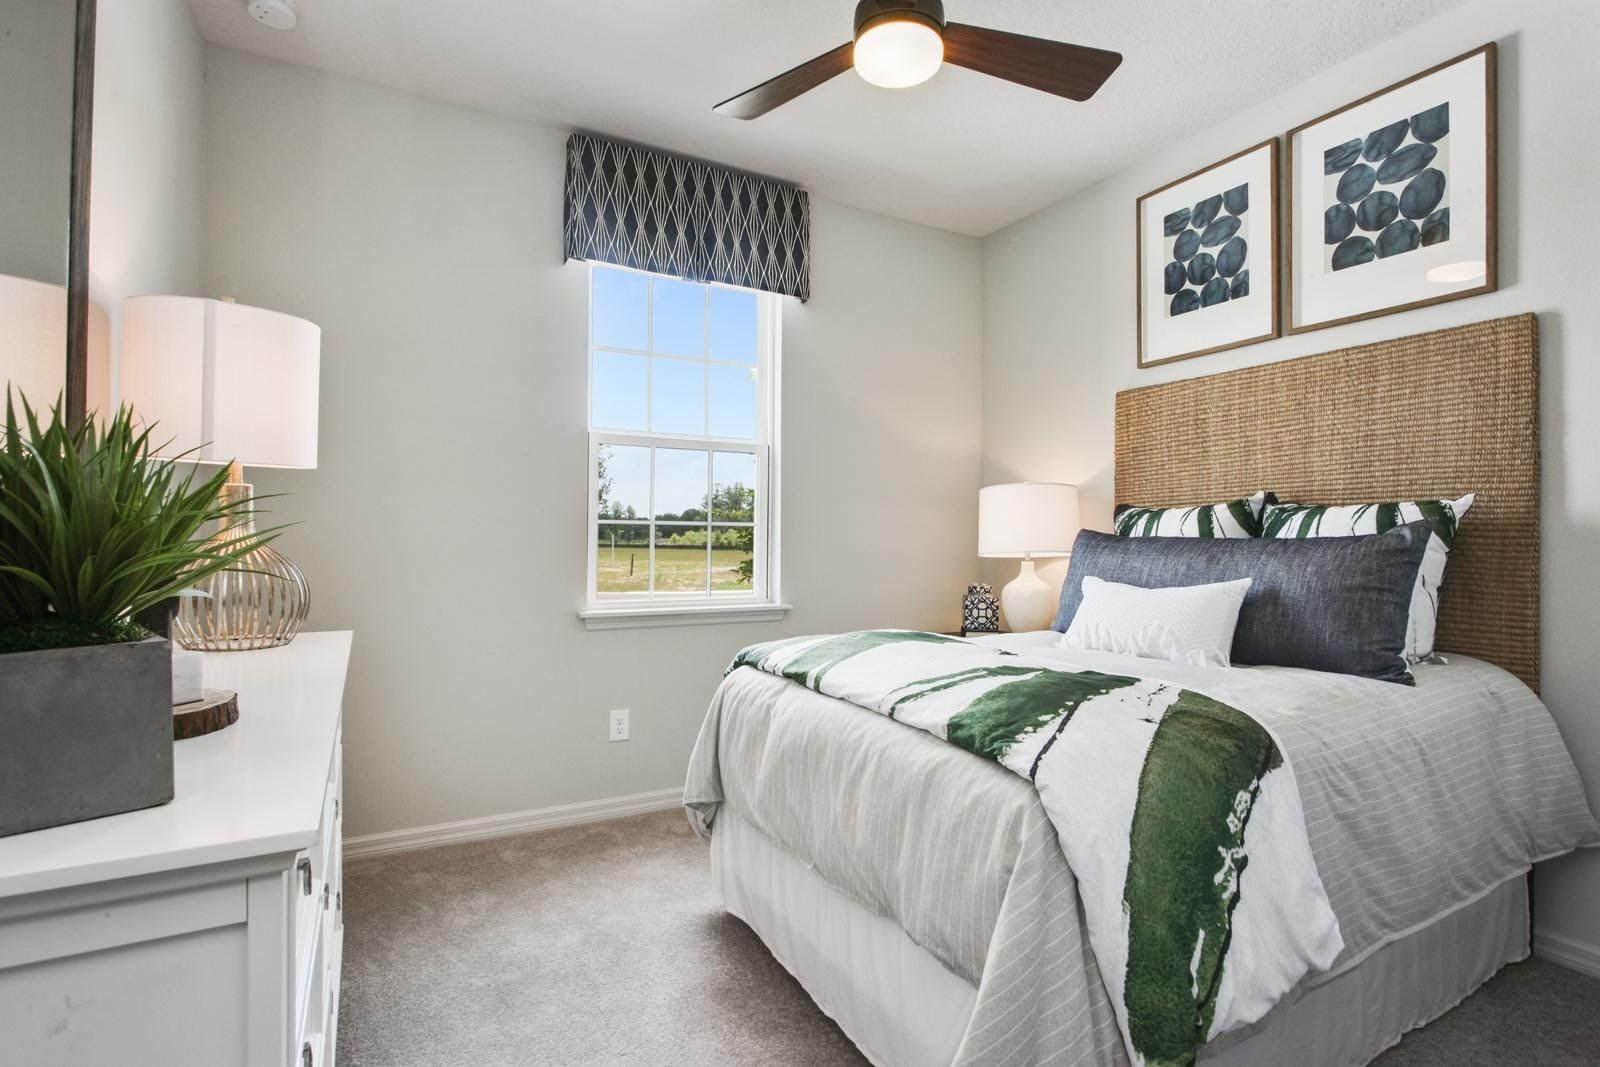 Bedroom-in-Magnolia-Woodland-at-Cypress Preserve Villas-in-Land O' Lakes